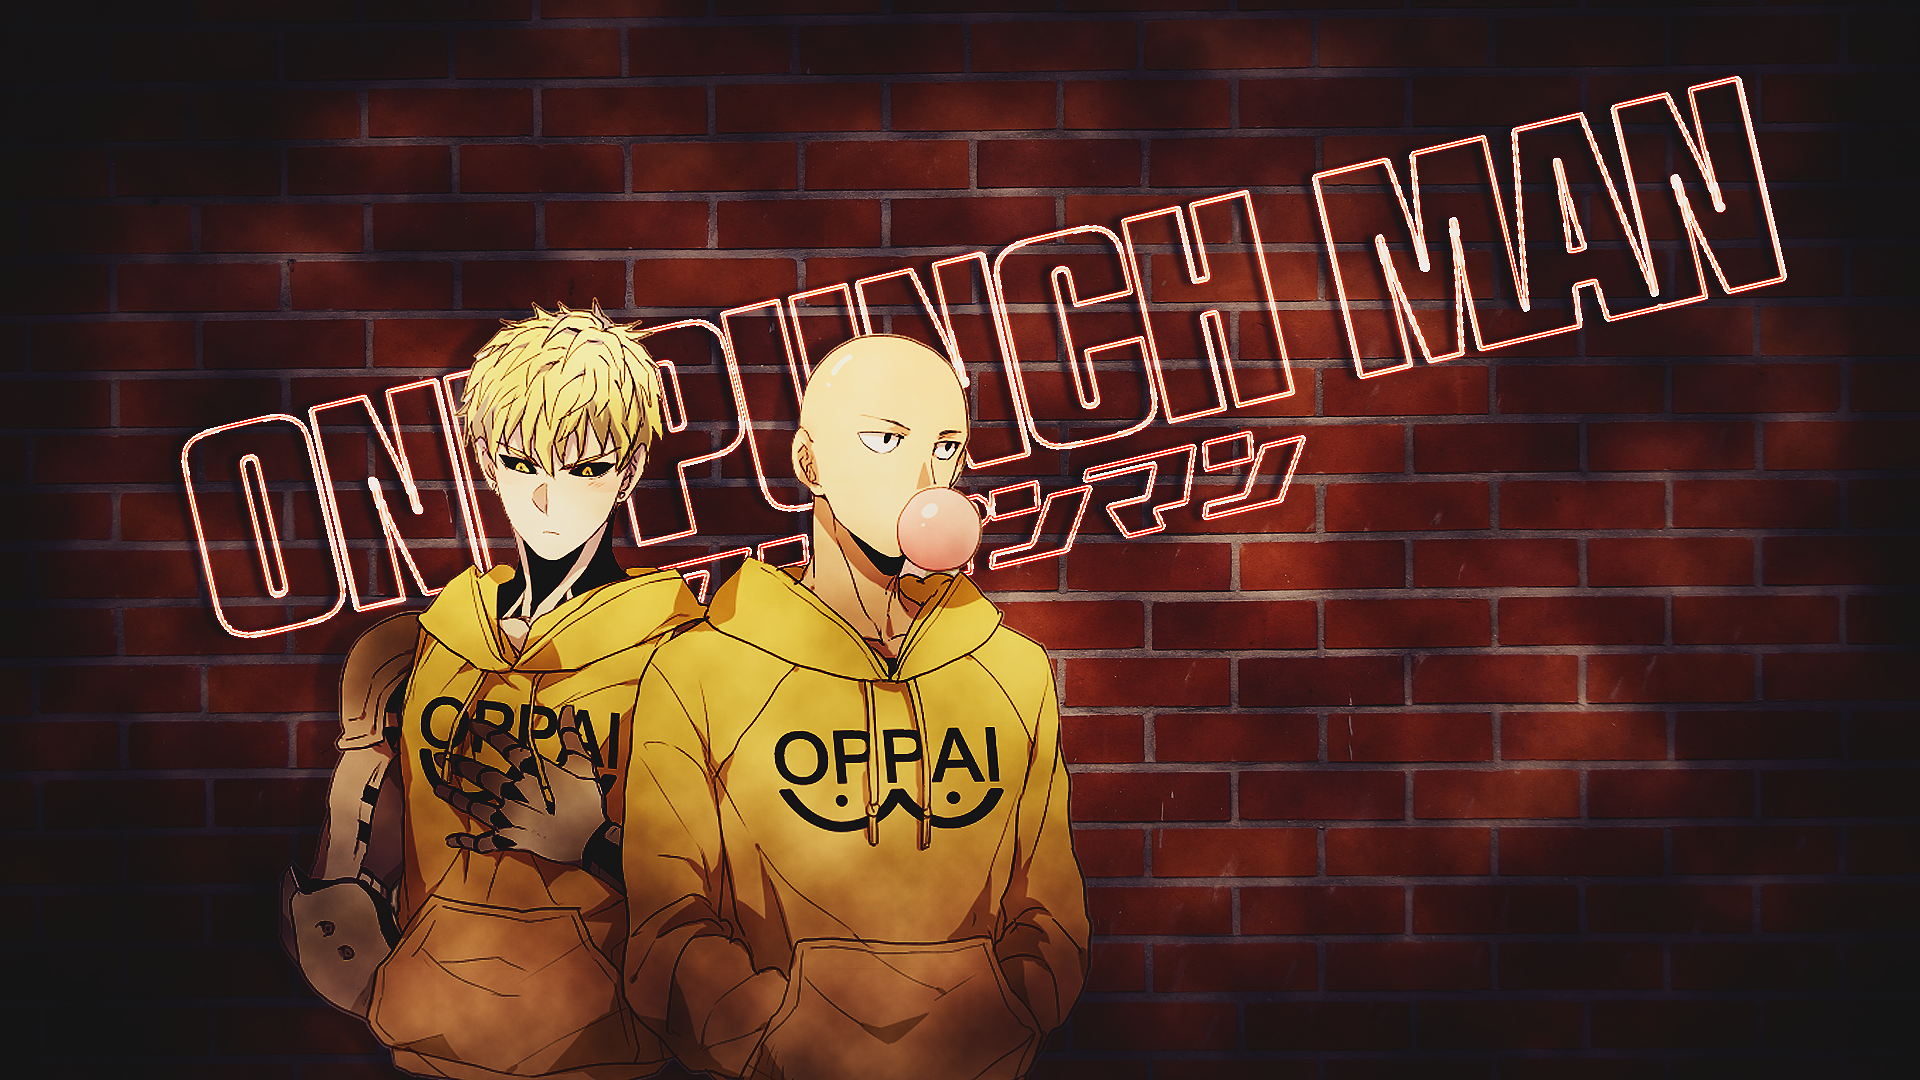 Hd wallpaper one punch man - Anime One Punch Man Saitama One Punch Man Genos One